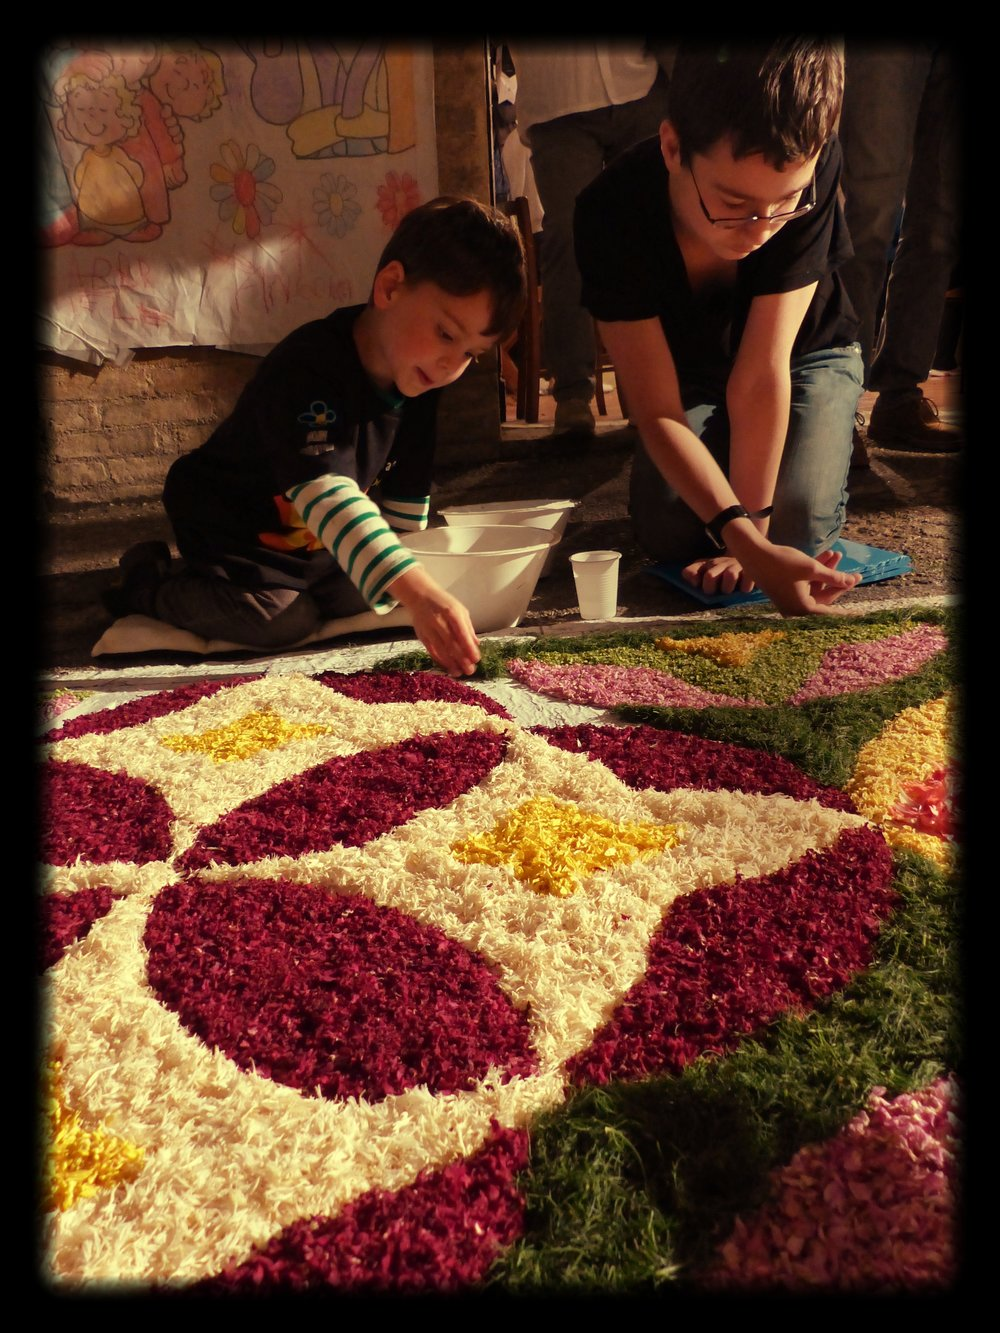 Brothers putting finishing touches at Infiorata in Spello, Umbria